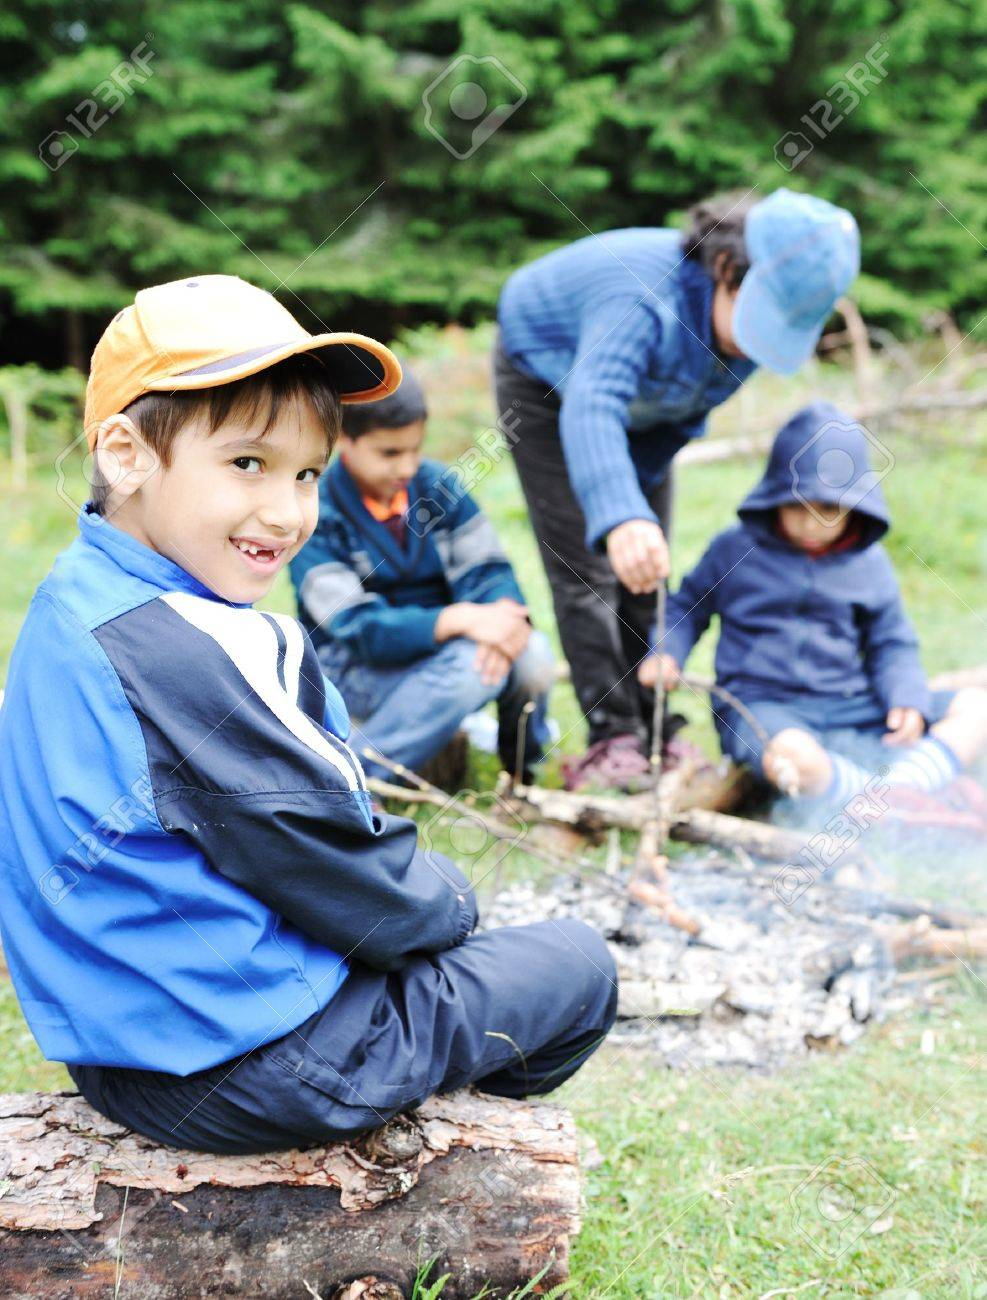 Barbecue in nature, group of children  preparing sausages on fire Stock Photo - 11176884